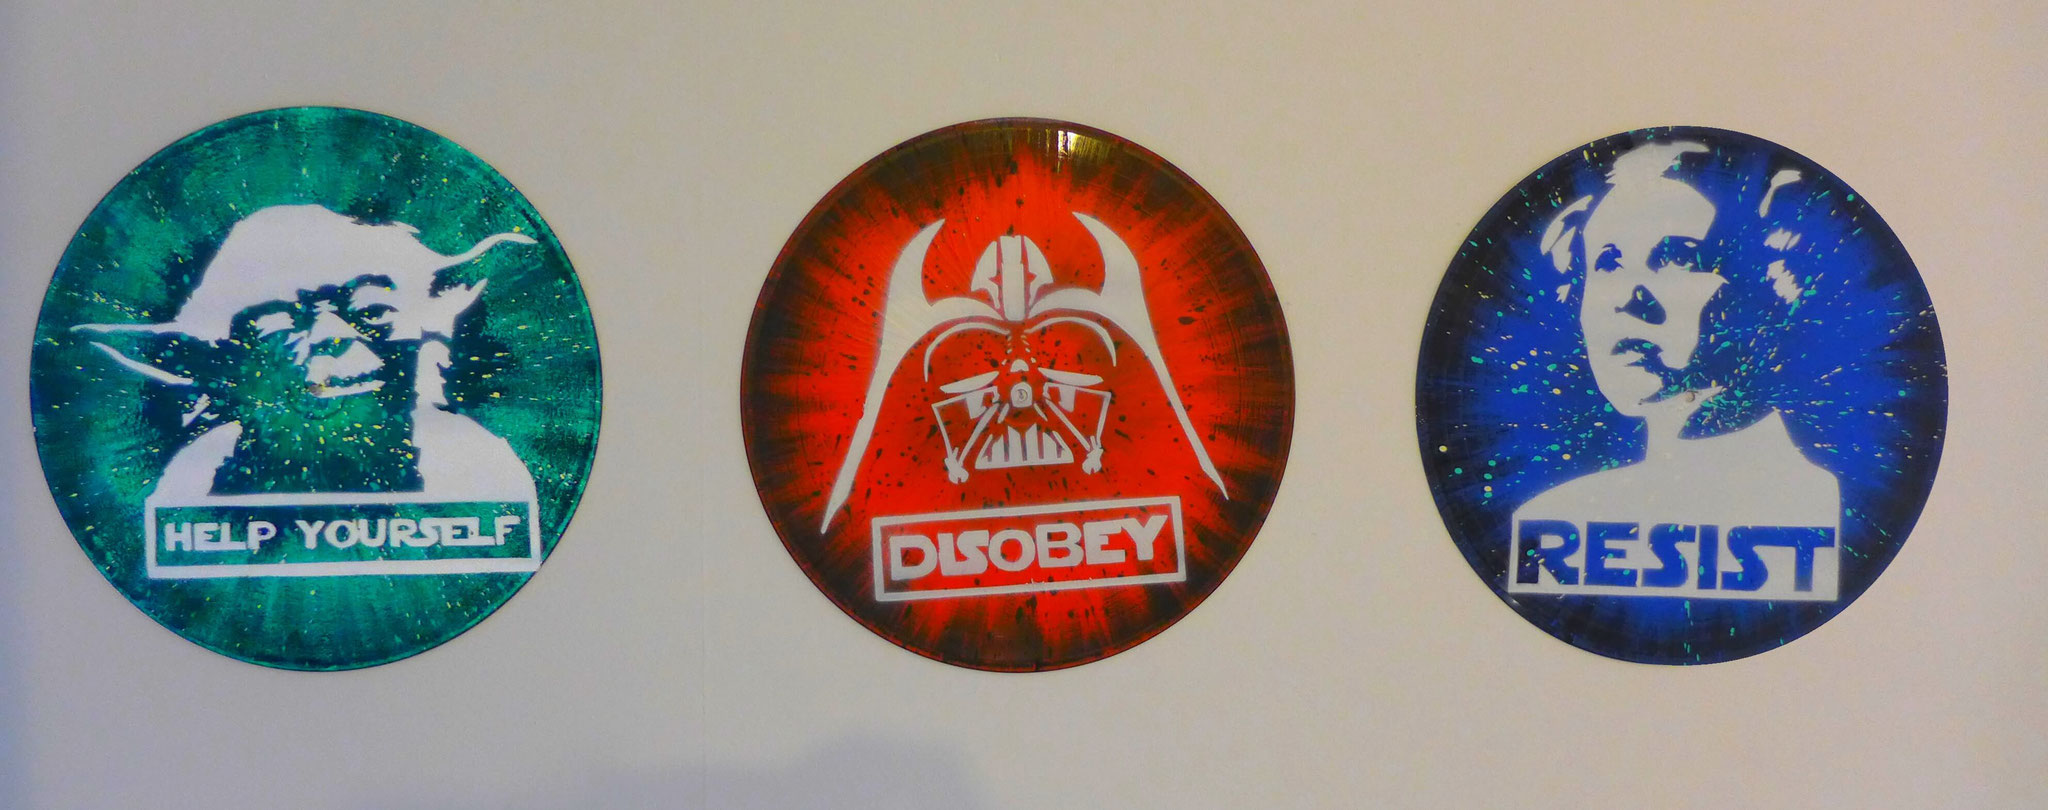 disque-vinyle-decoratif-star-wars